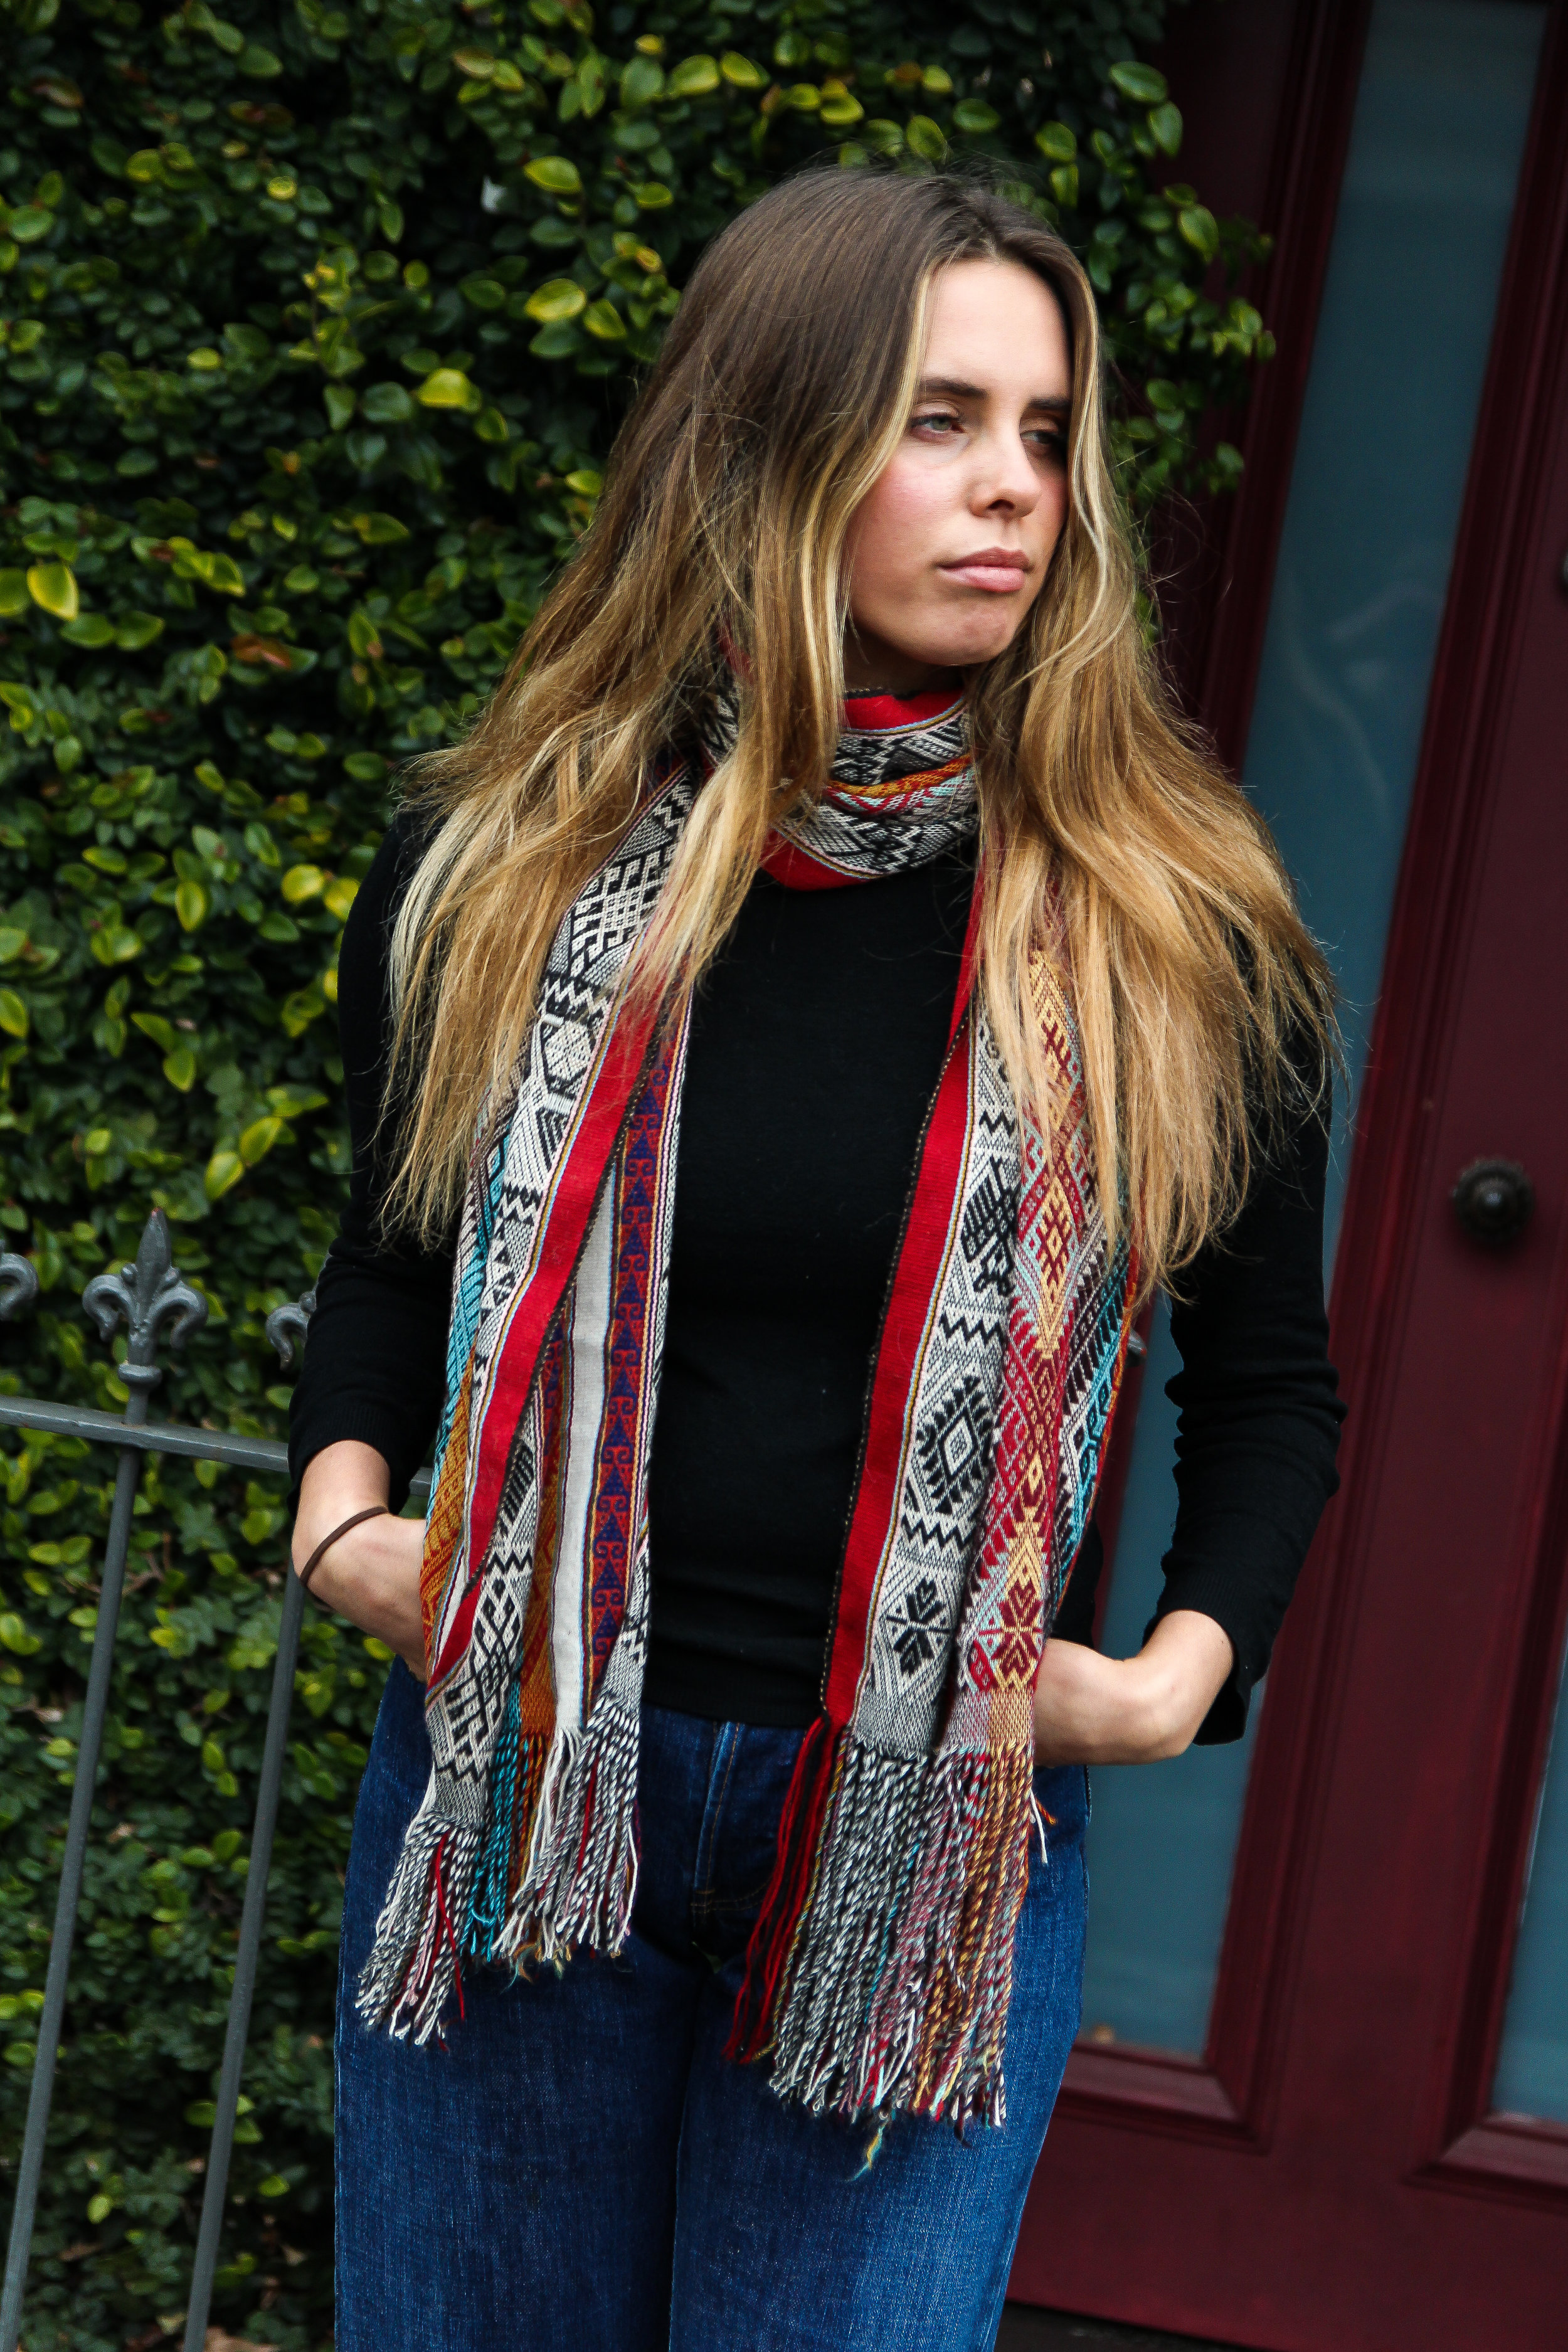 Melbourne, Australia, 2018- Caitlyn modelling the Peruvian scarves